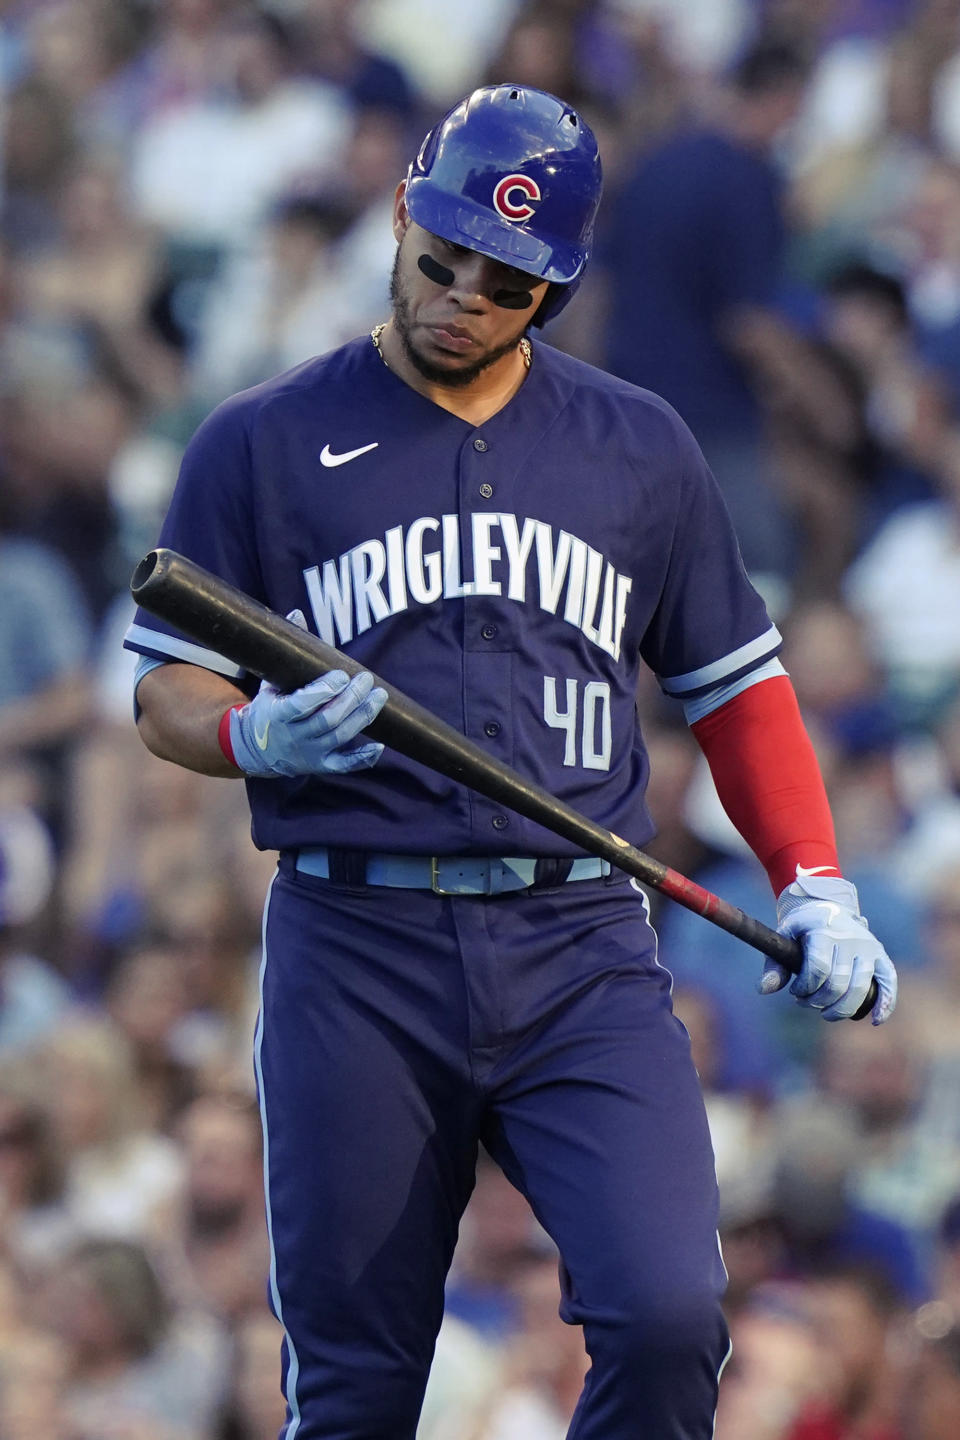 Chicago Cubs' Willson Contreras checks his bat after striking out swinging during the first inning of the team's baseball game against the Miami Marlins in Chicago, Friday, June 18, 2021. (AP Photo/Nam Y. Huh)